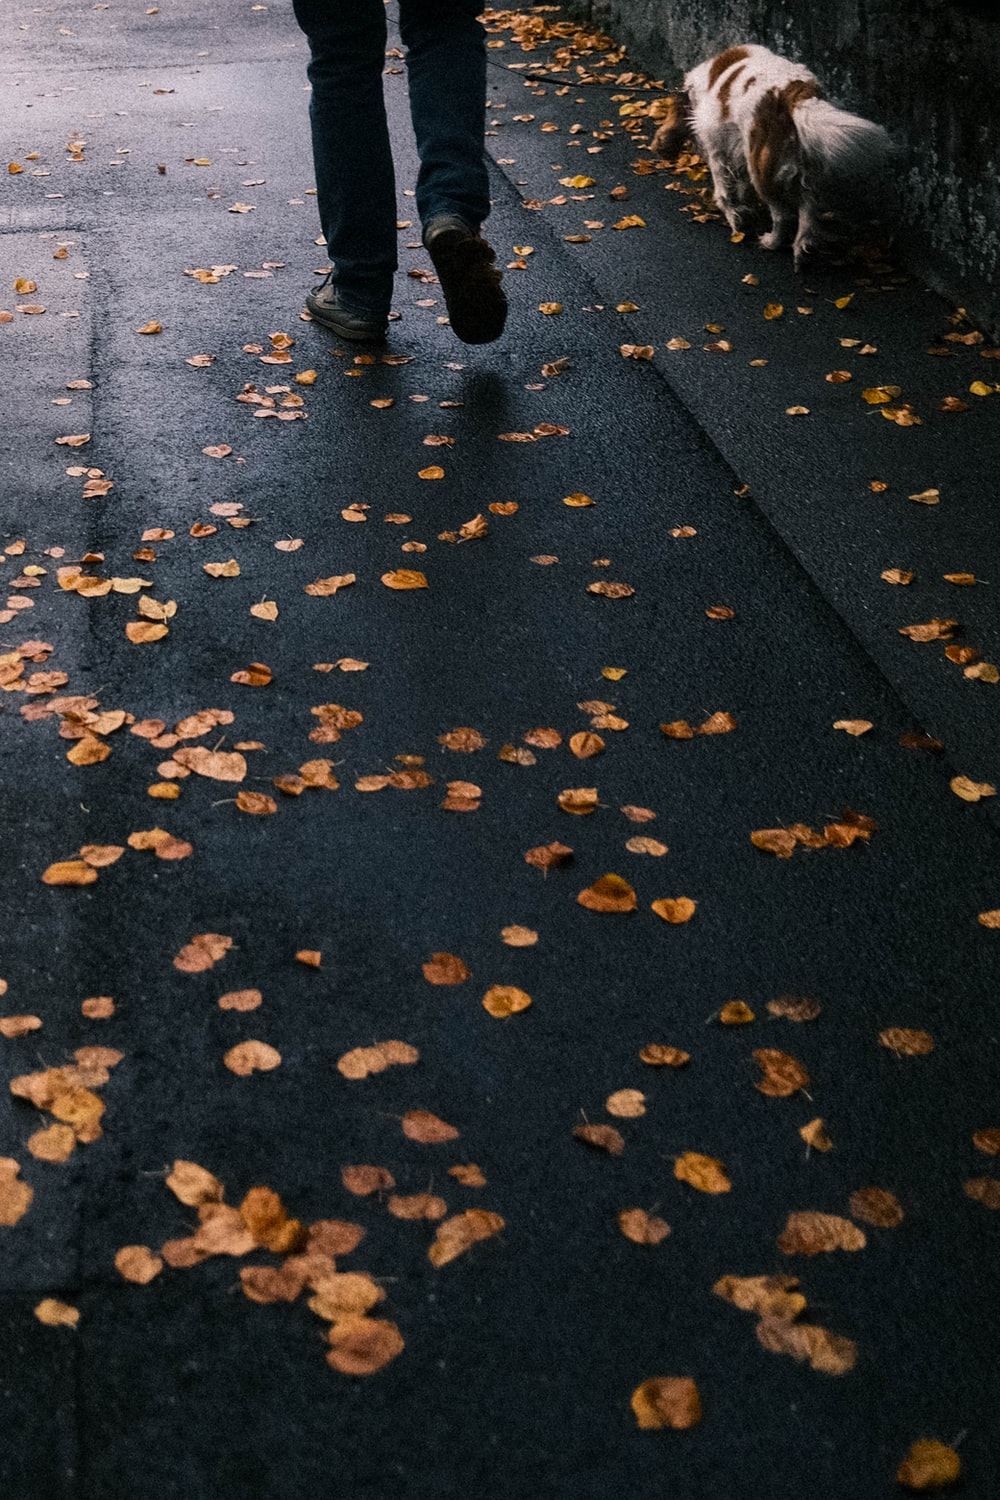 person in black pants walking on gray concrete road with yellow leaves